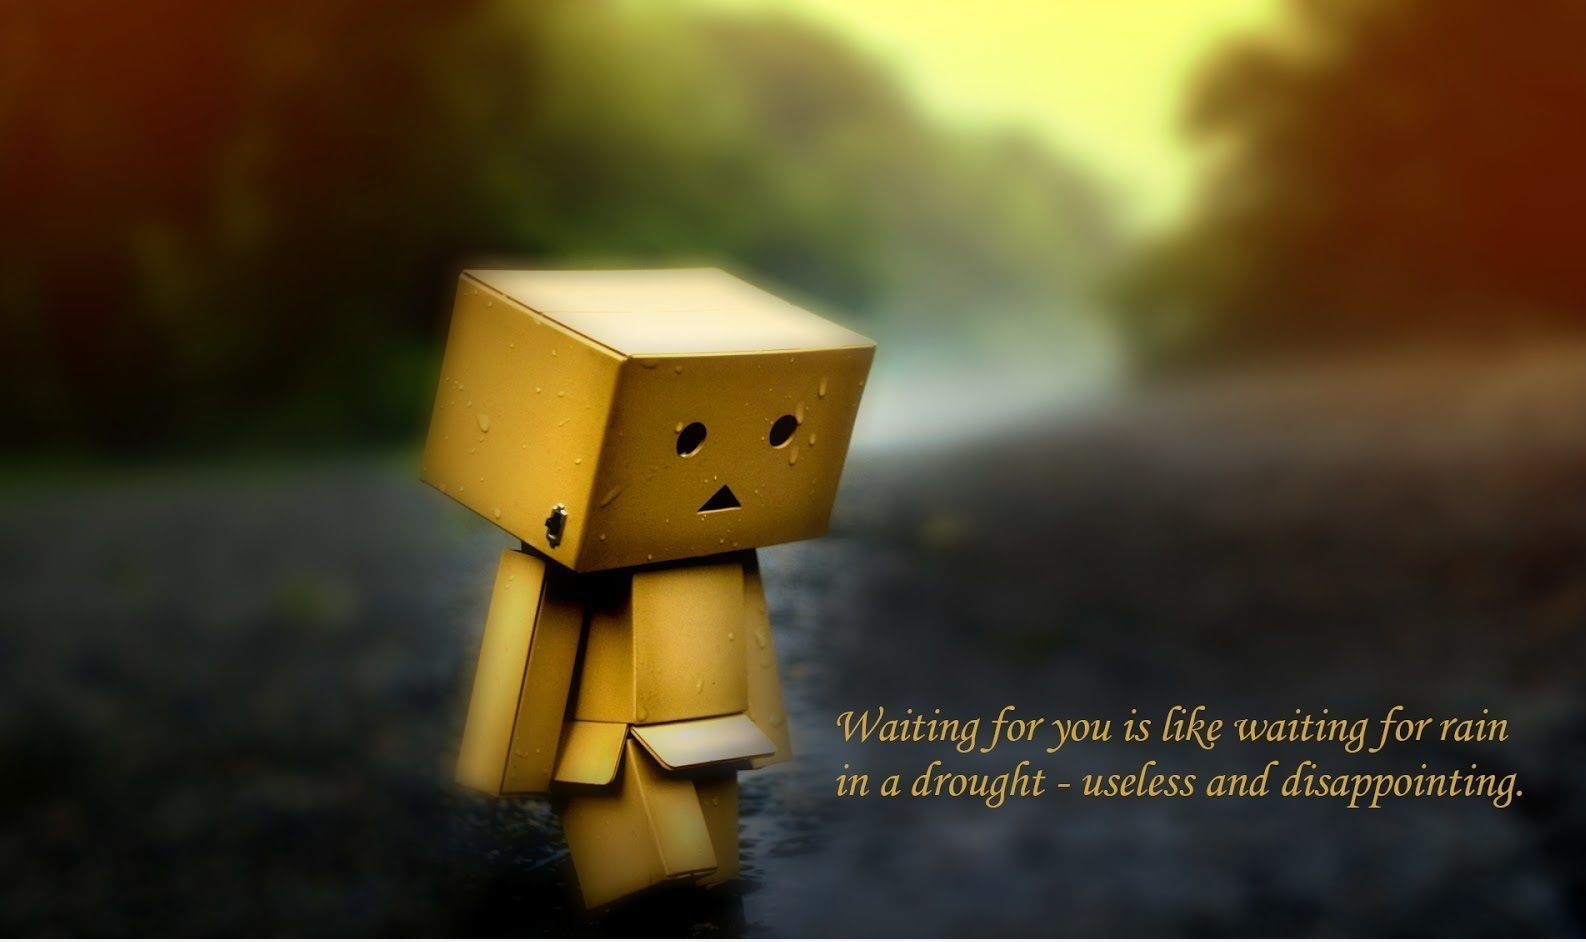 Alone Quotes Images Boy Sad Quotes About Love 532405 Hd Wallpaper Backgrounds Download